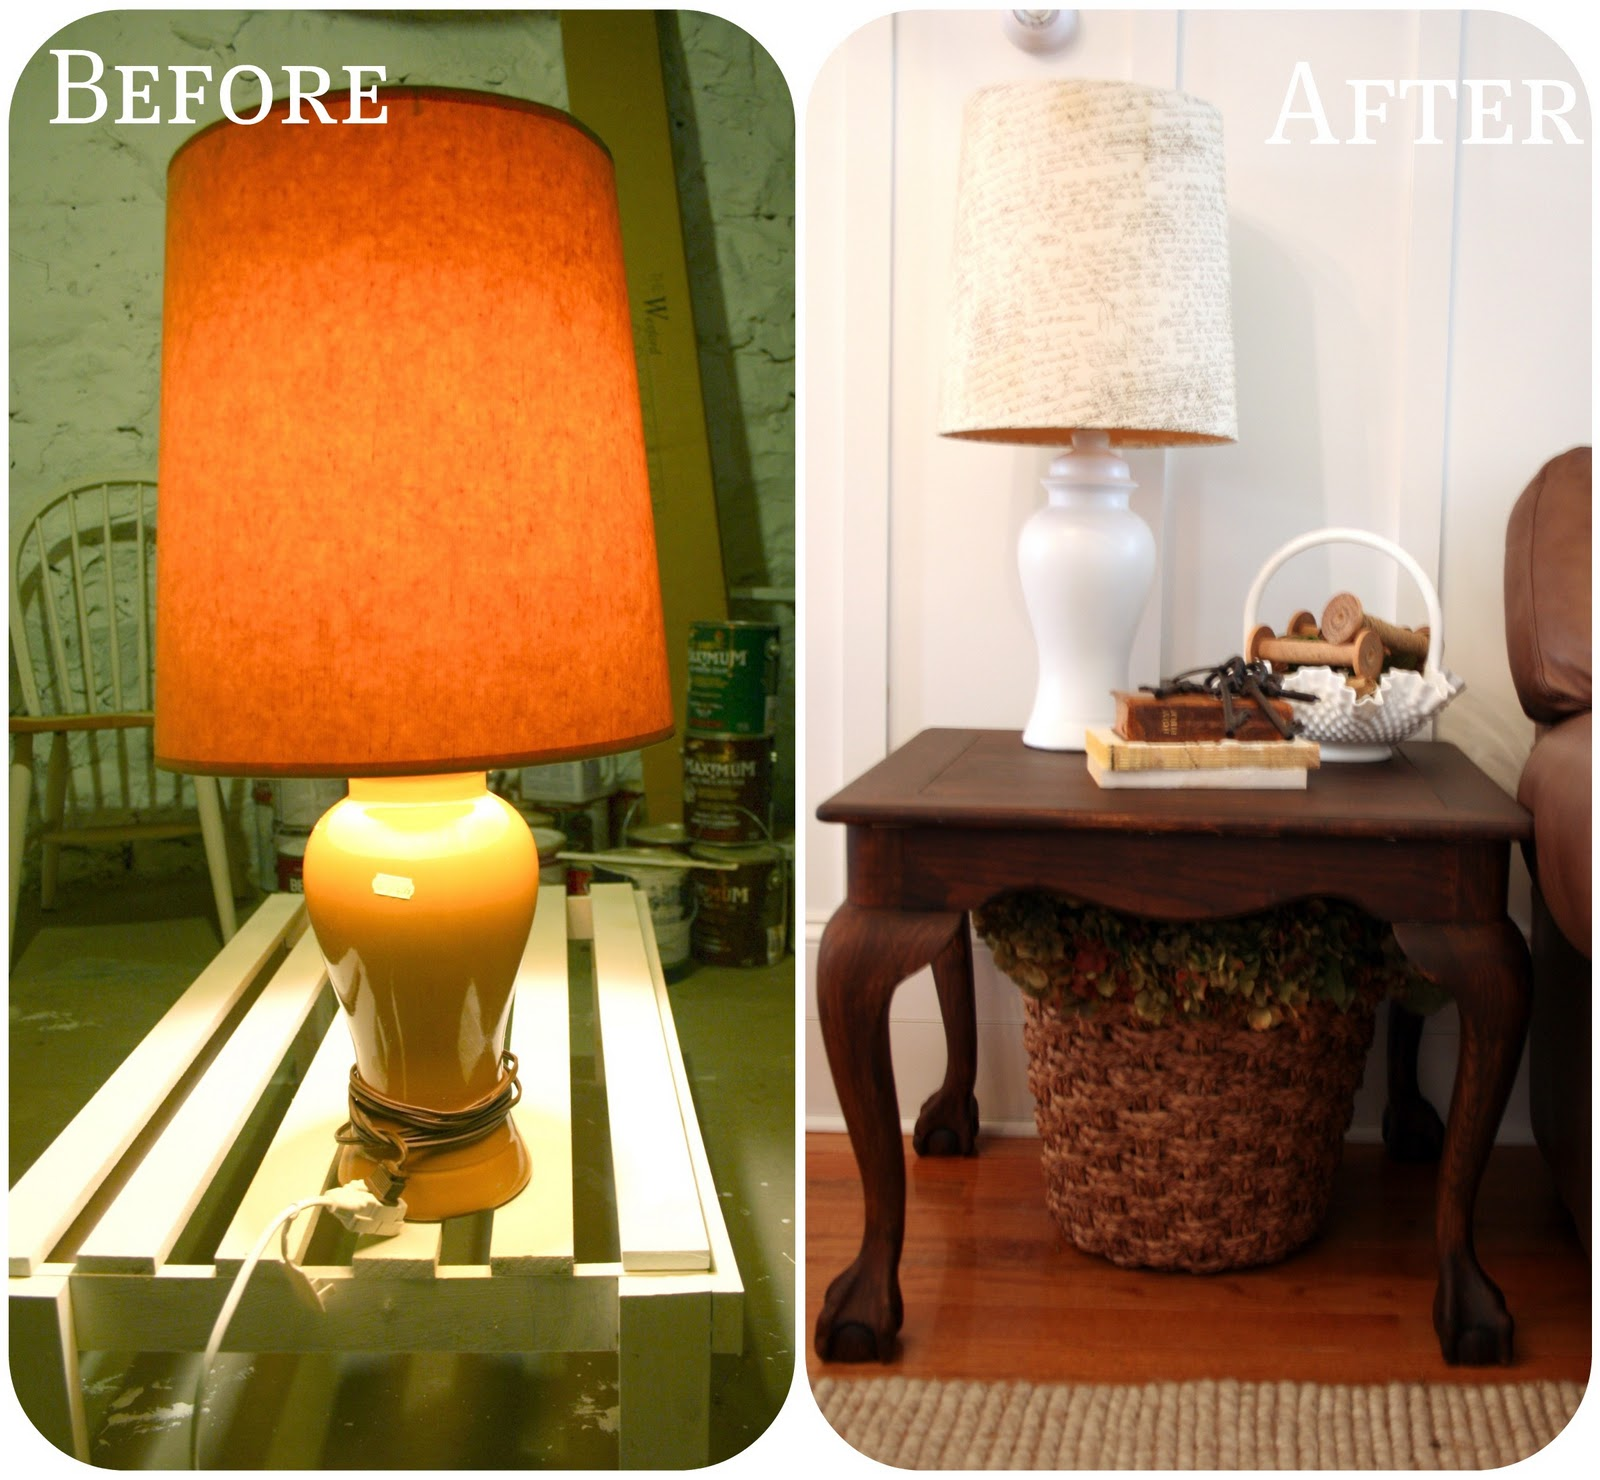 Pottery Barn Replacement Lamp Shades: Pottery Barn Knock-off Script Lamp Shade